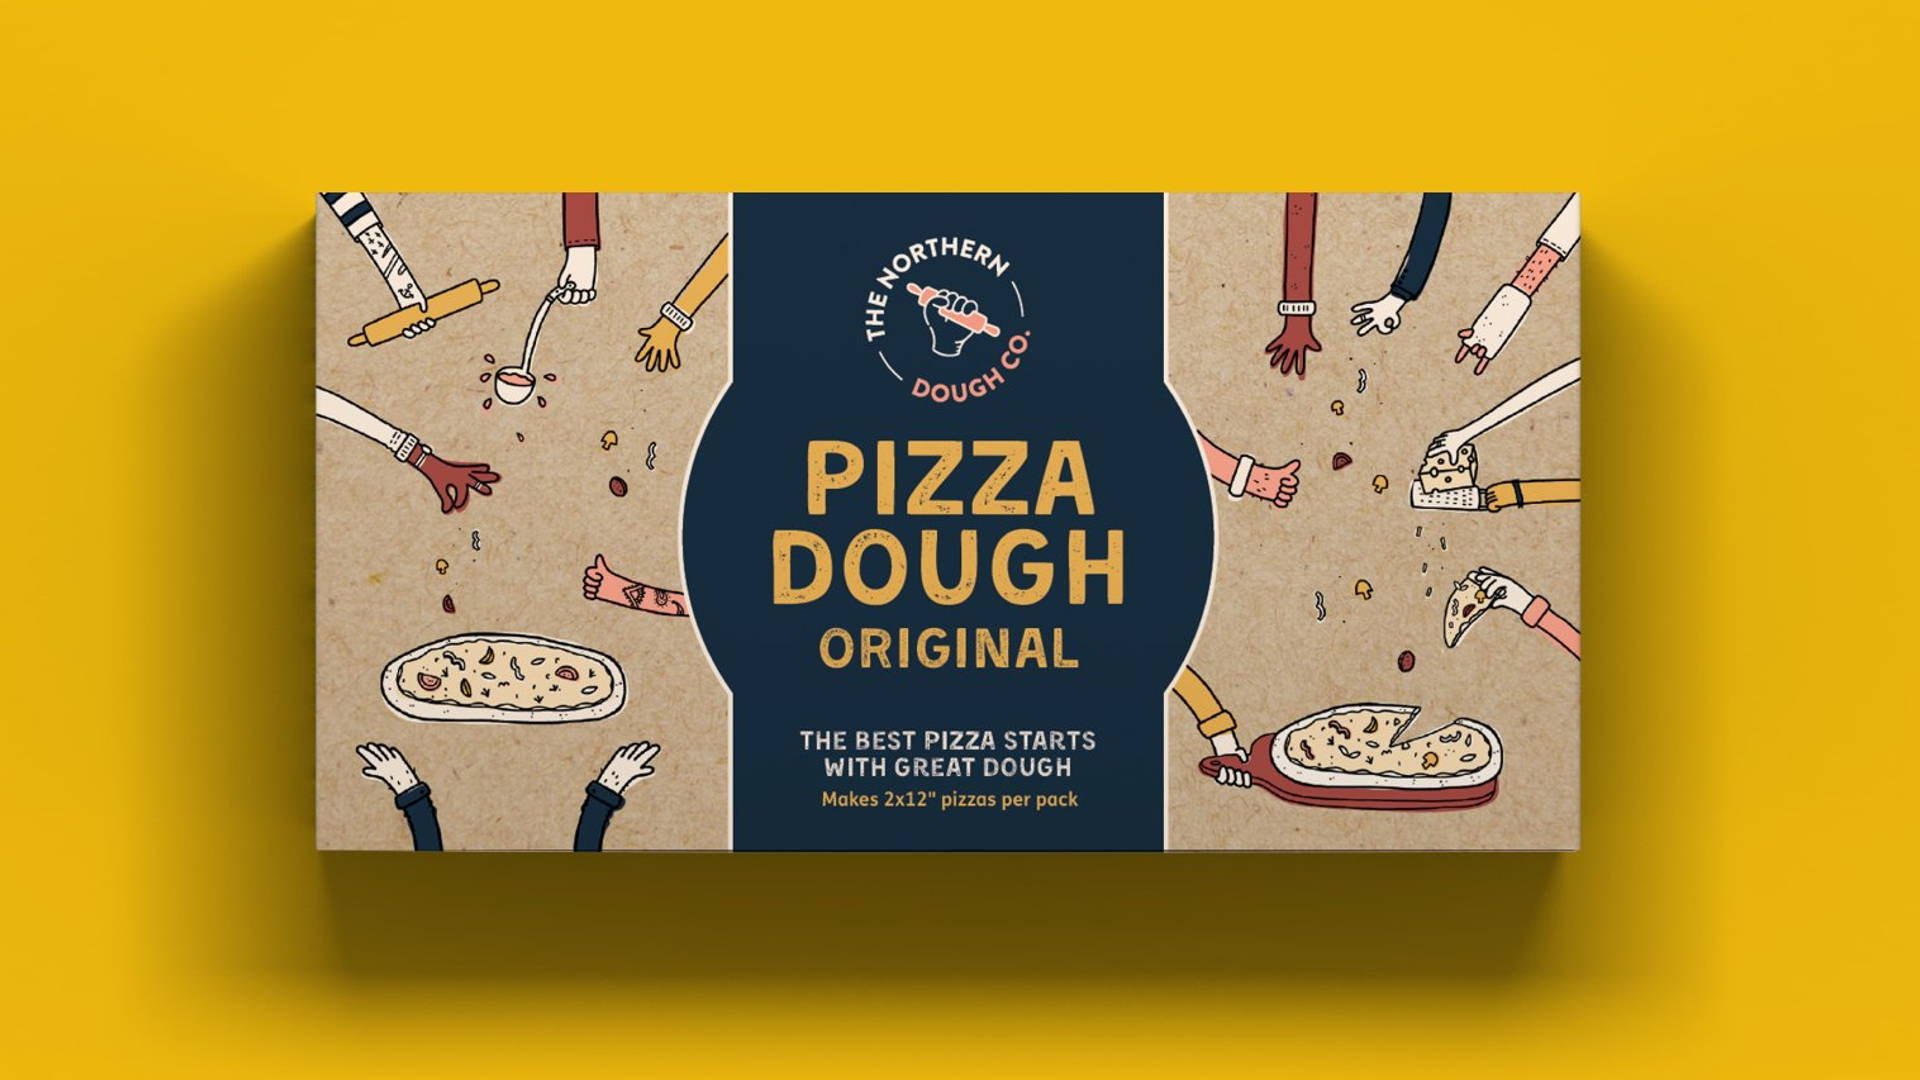 We Love This Adorably Illustrated Pizza Dough Packaging